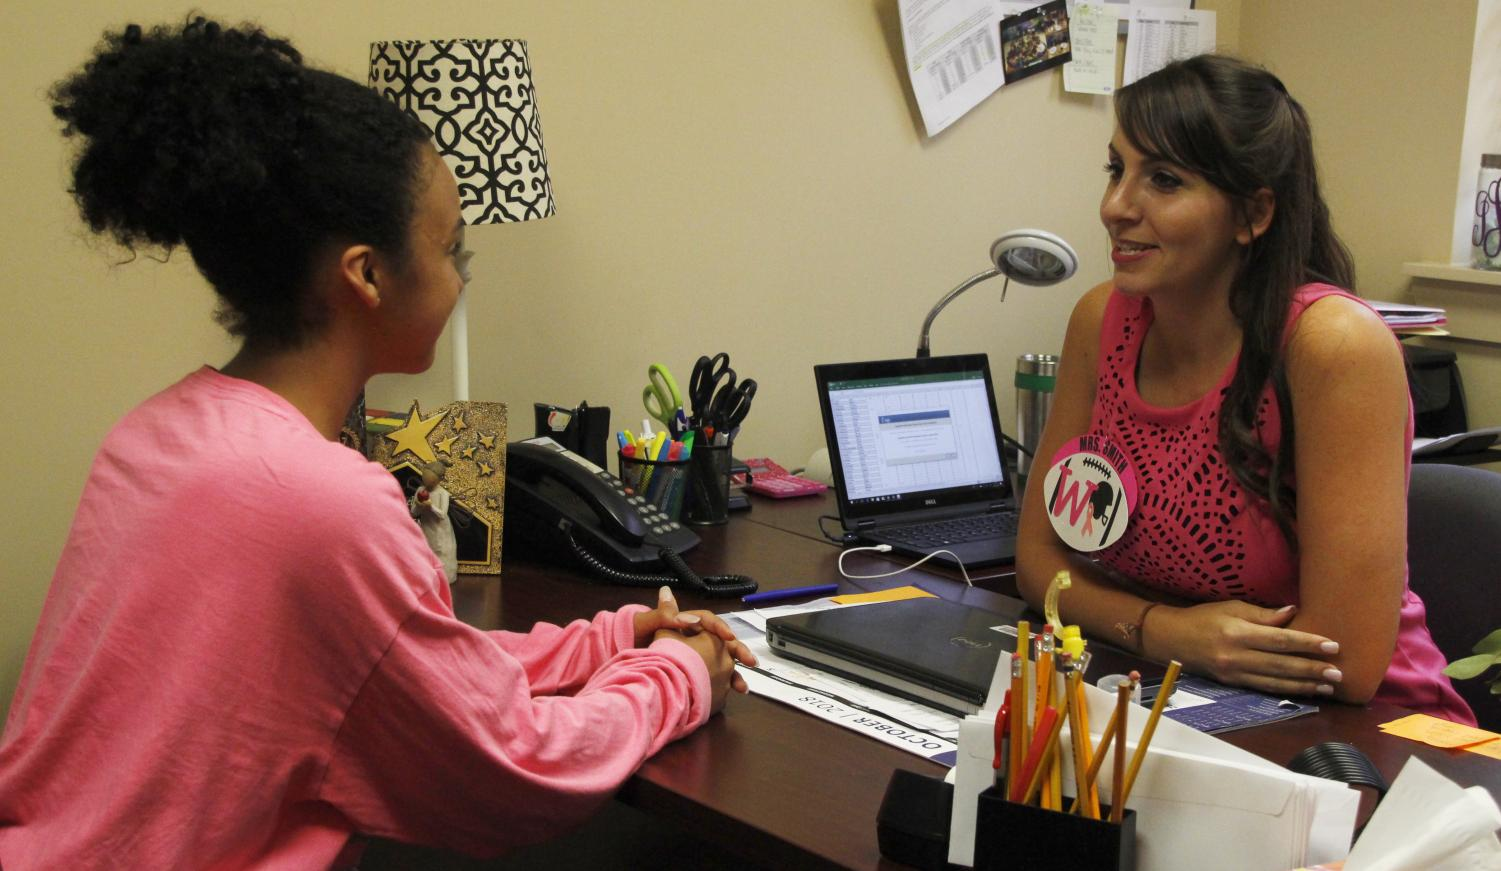 2018 Young Alumnus of the Year Joni Smith speaks with one of the students at Westside Junior High in her role as administrative assistant. Smith was also named the 2017 Louisiana State Teacher of the Year.